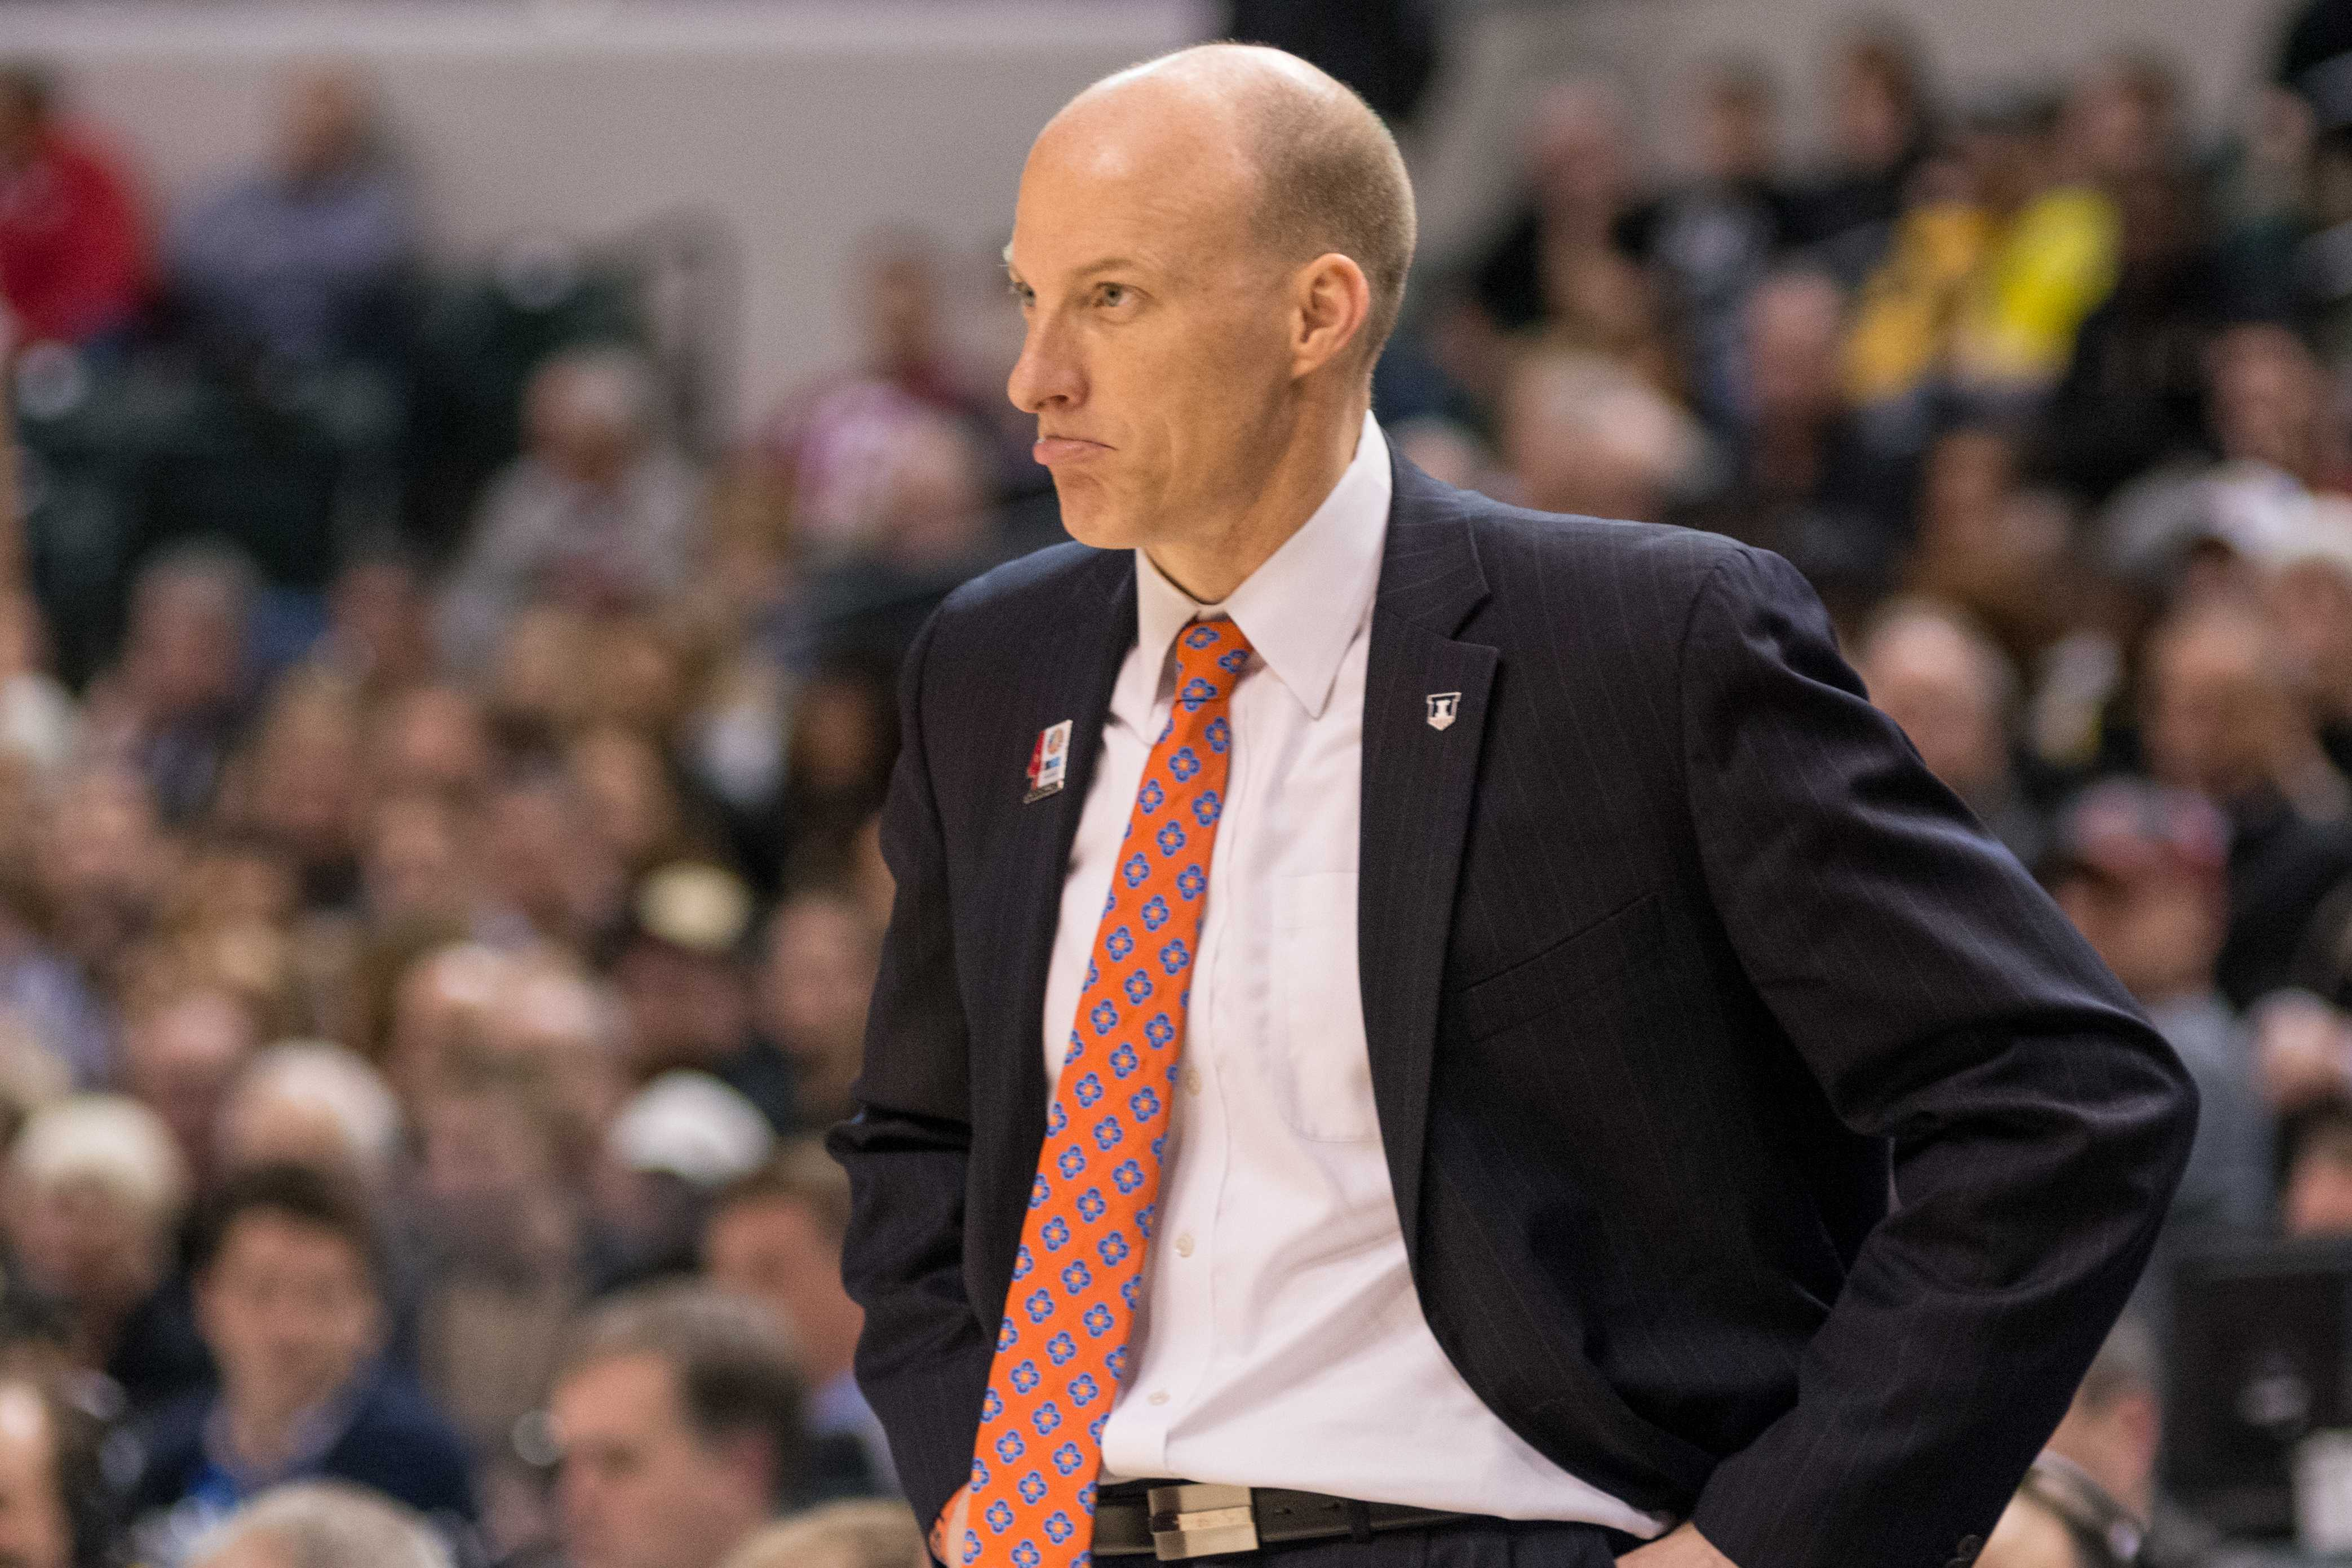 The+guys+discuss+John+Groce%27s+status%26nbsp%3Bas%26nbsp%3BIllini+basketball+coach+and+what+the+future+of+the+program+holds.+They+also+debate+how+to+handle+the+allegations+of+Jaylon+Tate+and+Kendrick+Nunn+and+break+down+the+comments+of+their+former+high+school+coach%2C+Robert+Smith.